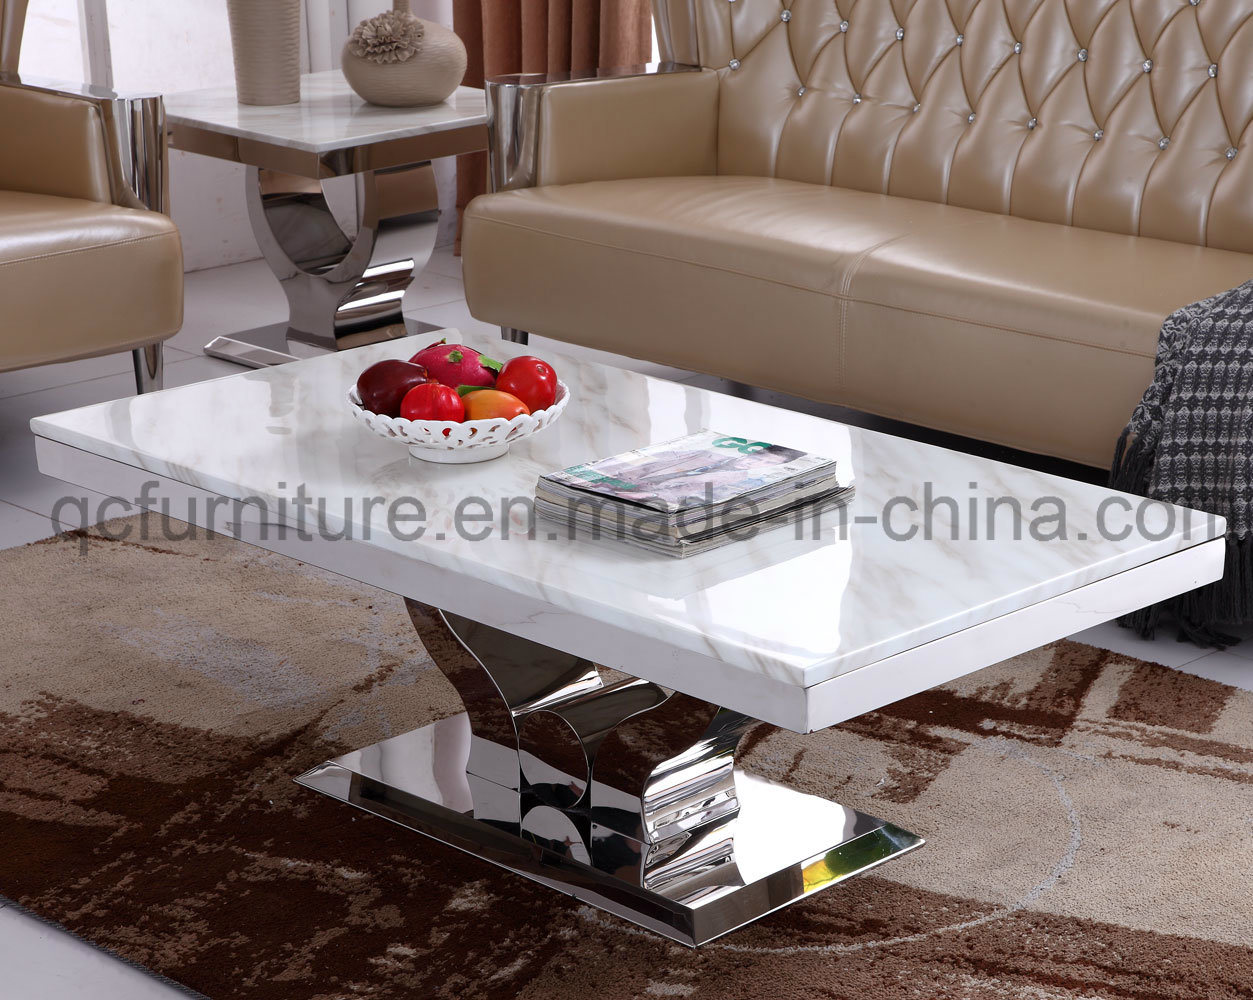 Marble And Silver Coffee Table.Hot Item White Marble Silver Stainless Steel Coffee Table For Living Room